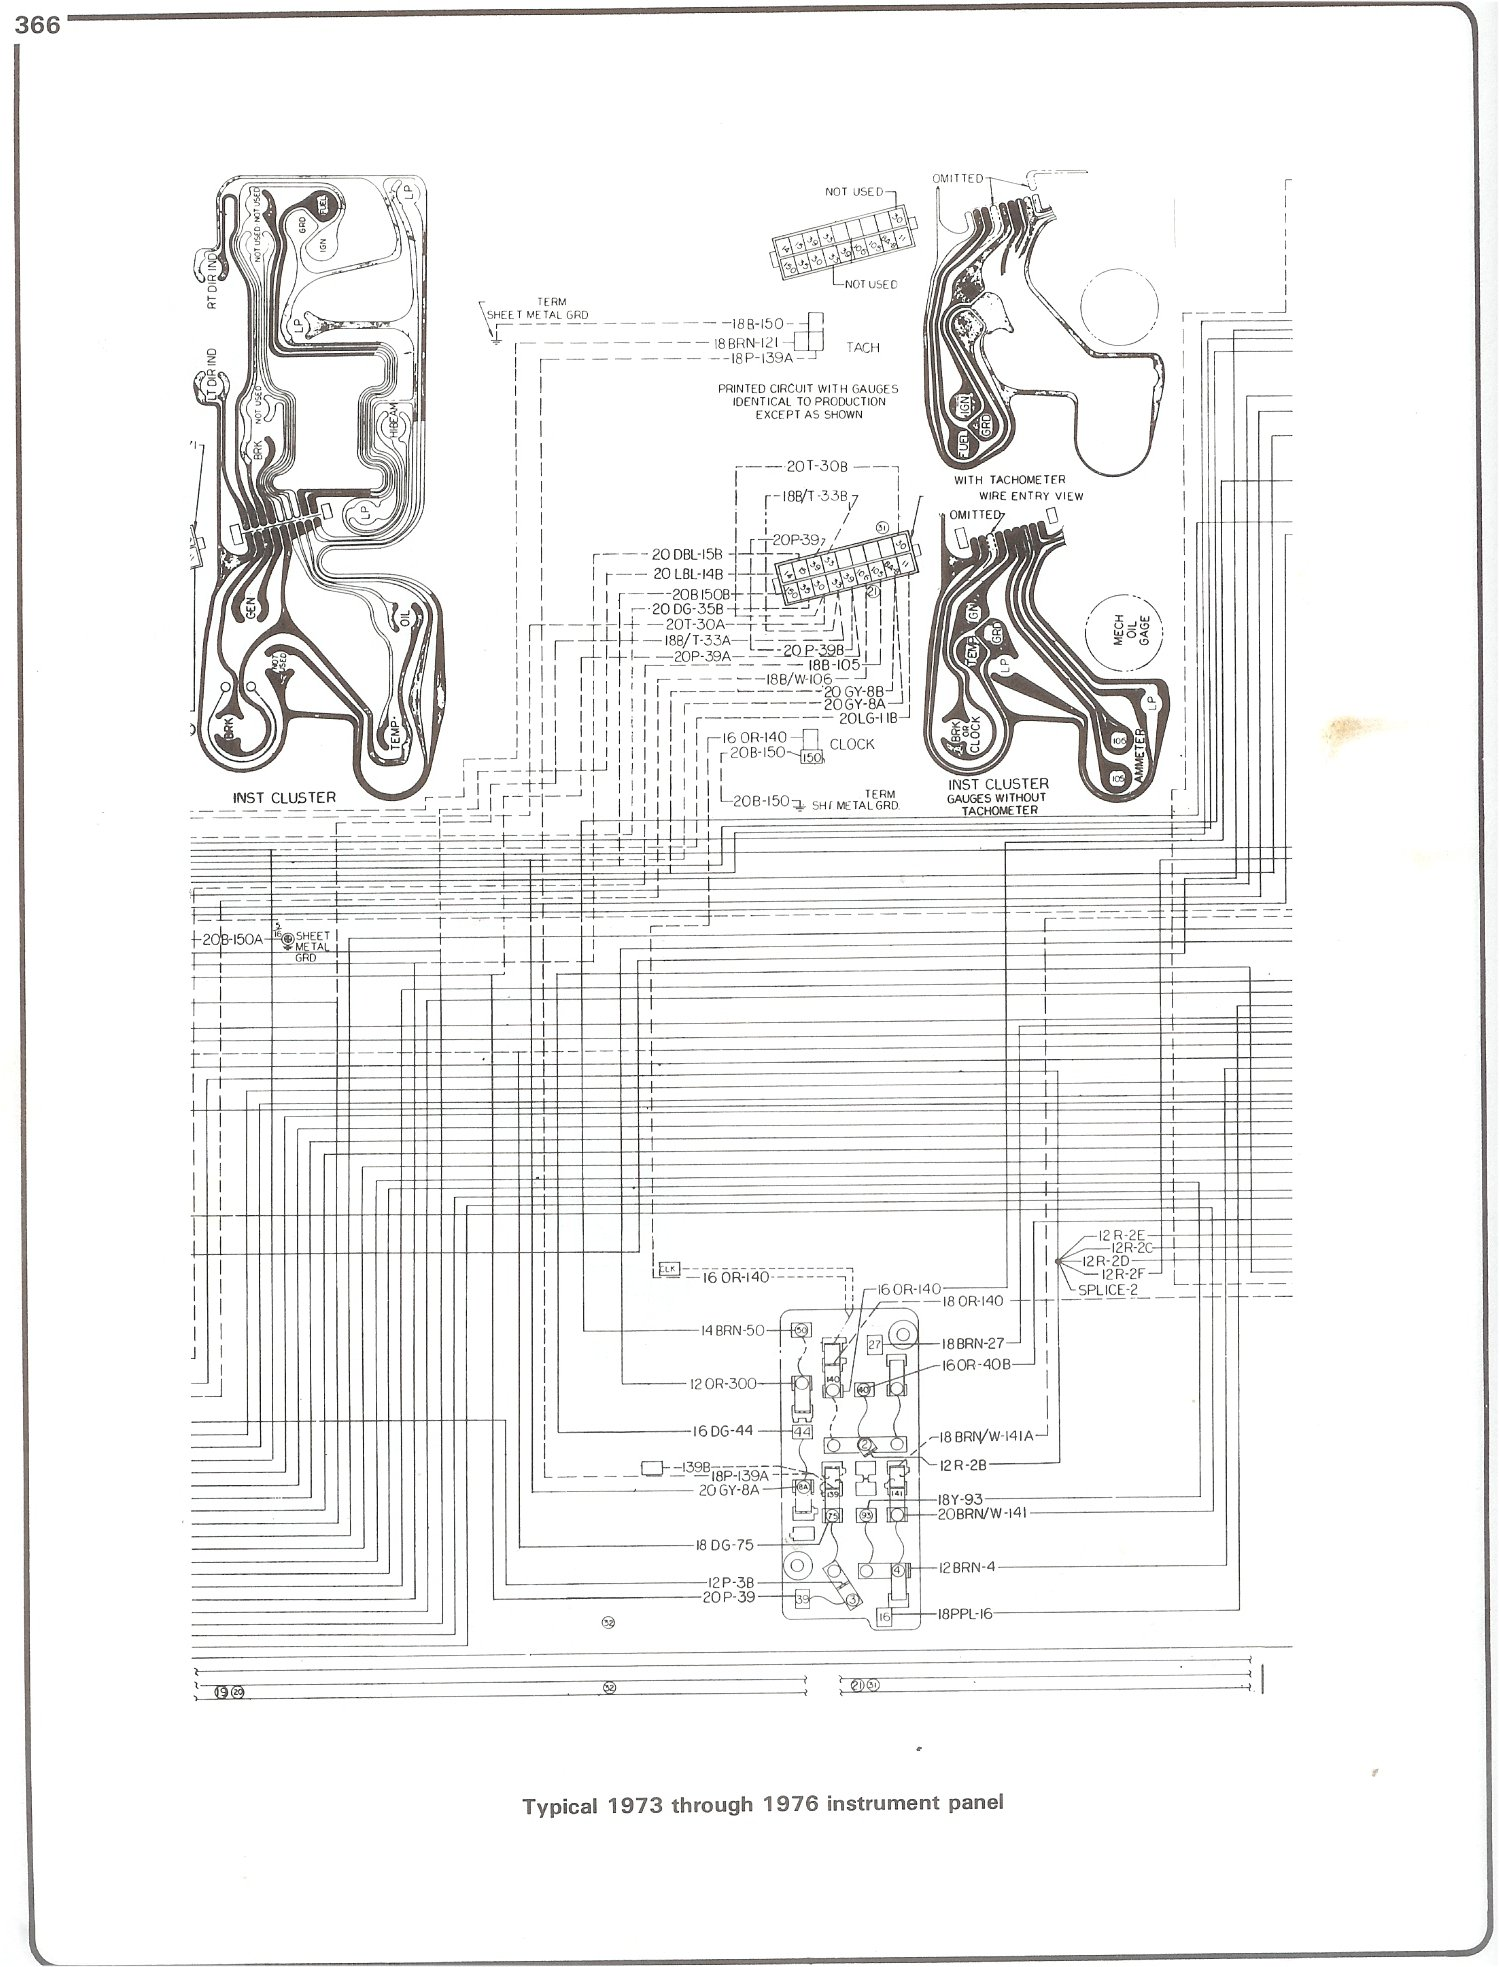 73 76_instrument complete 73 87 wiring diagrams 1986 chevy truck wiring diagram at readyjetset.co